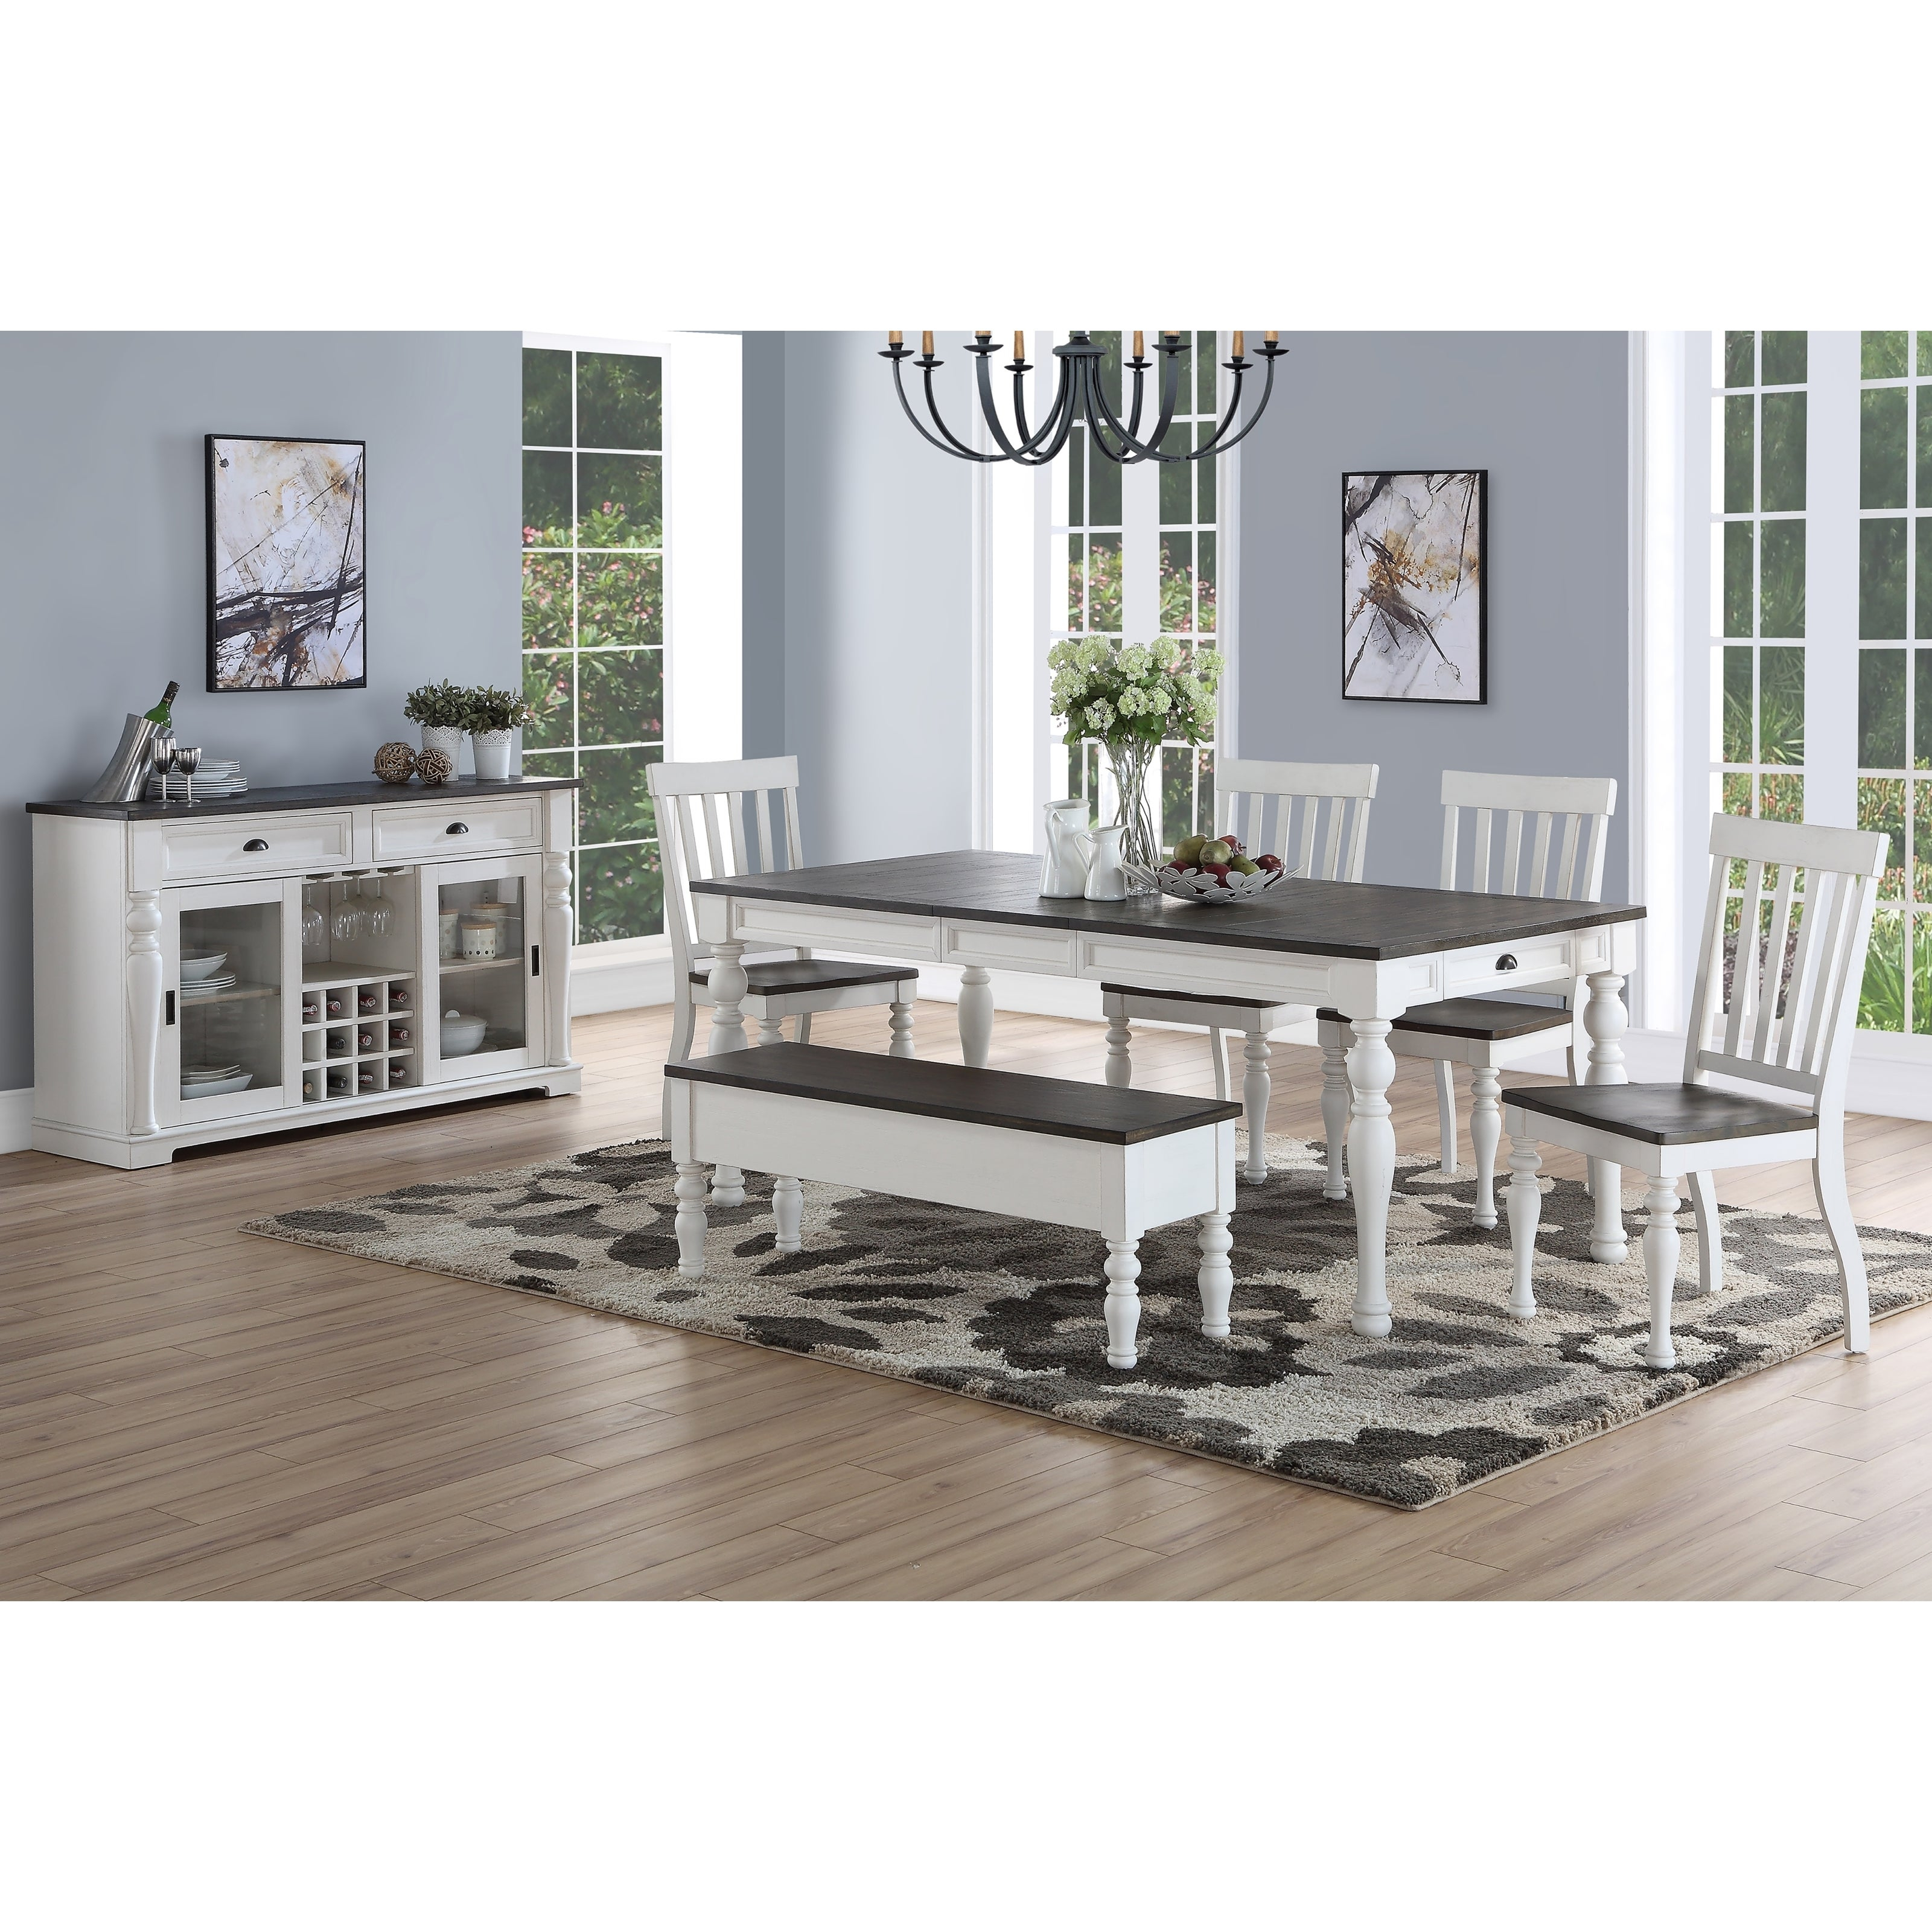 Buy 6 Piece Sets Kitchen & Dining Room Sets Online At Overstock Pertaining To 2018 Osterman 6 Piece Extendable Dining Sets (Set Of 6) (Image 4 of 20)